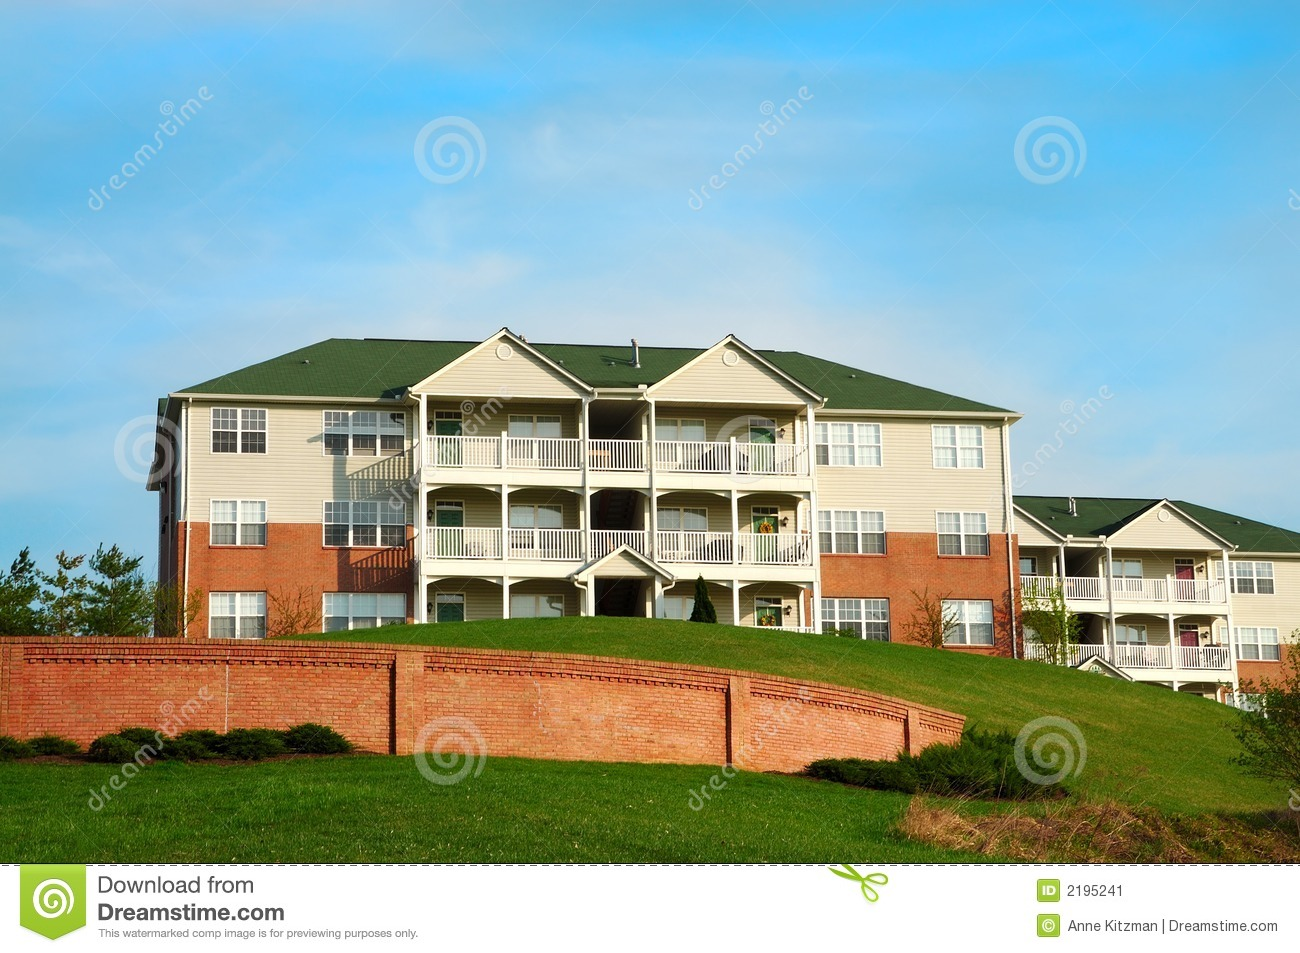 Condo Apartment Buildings